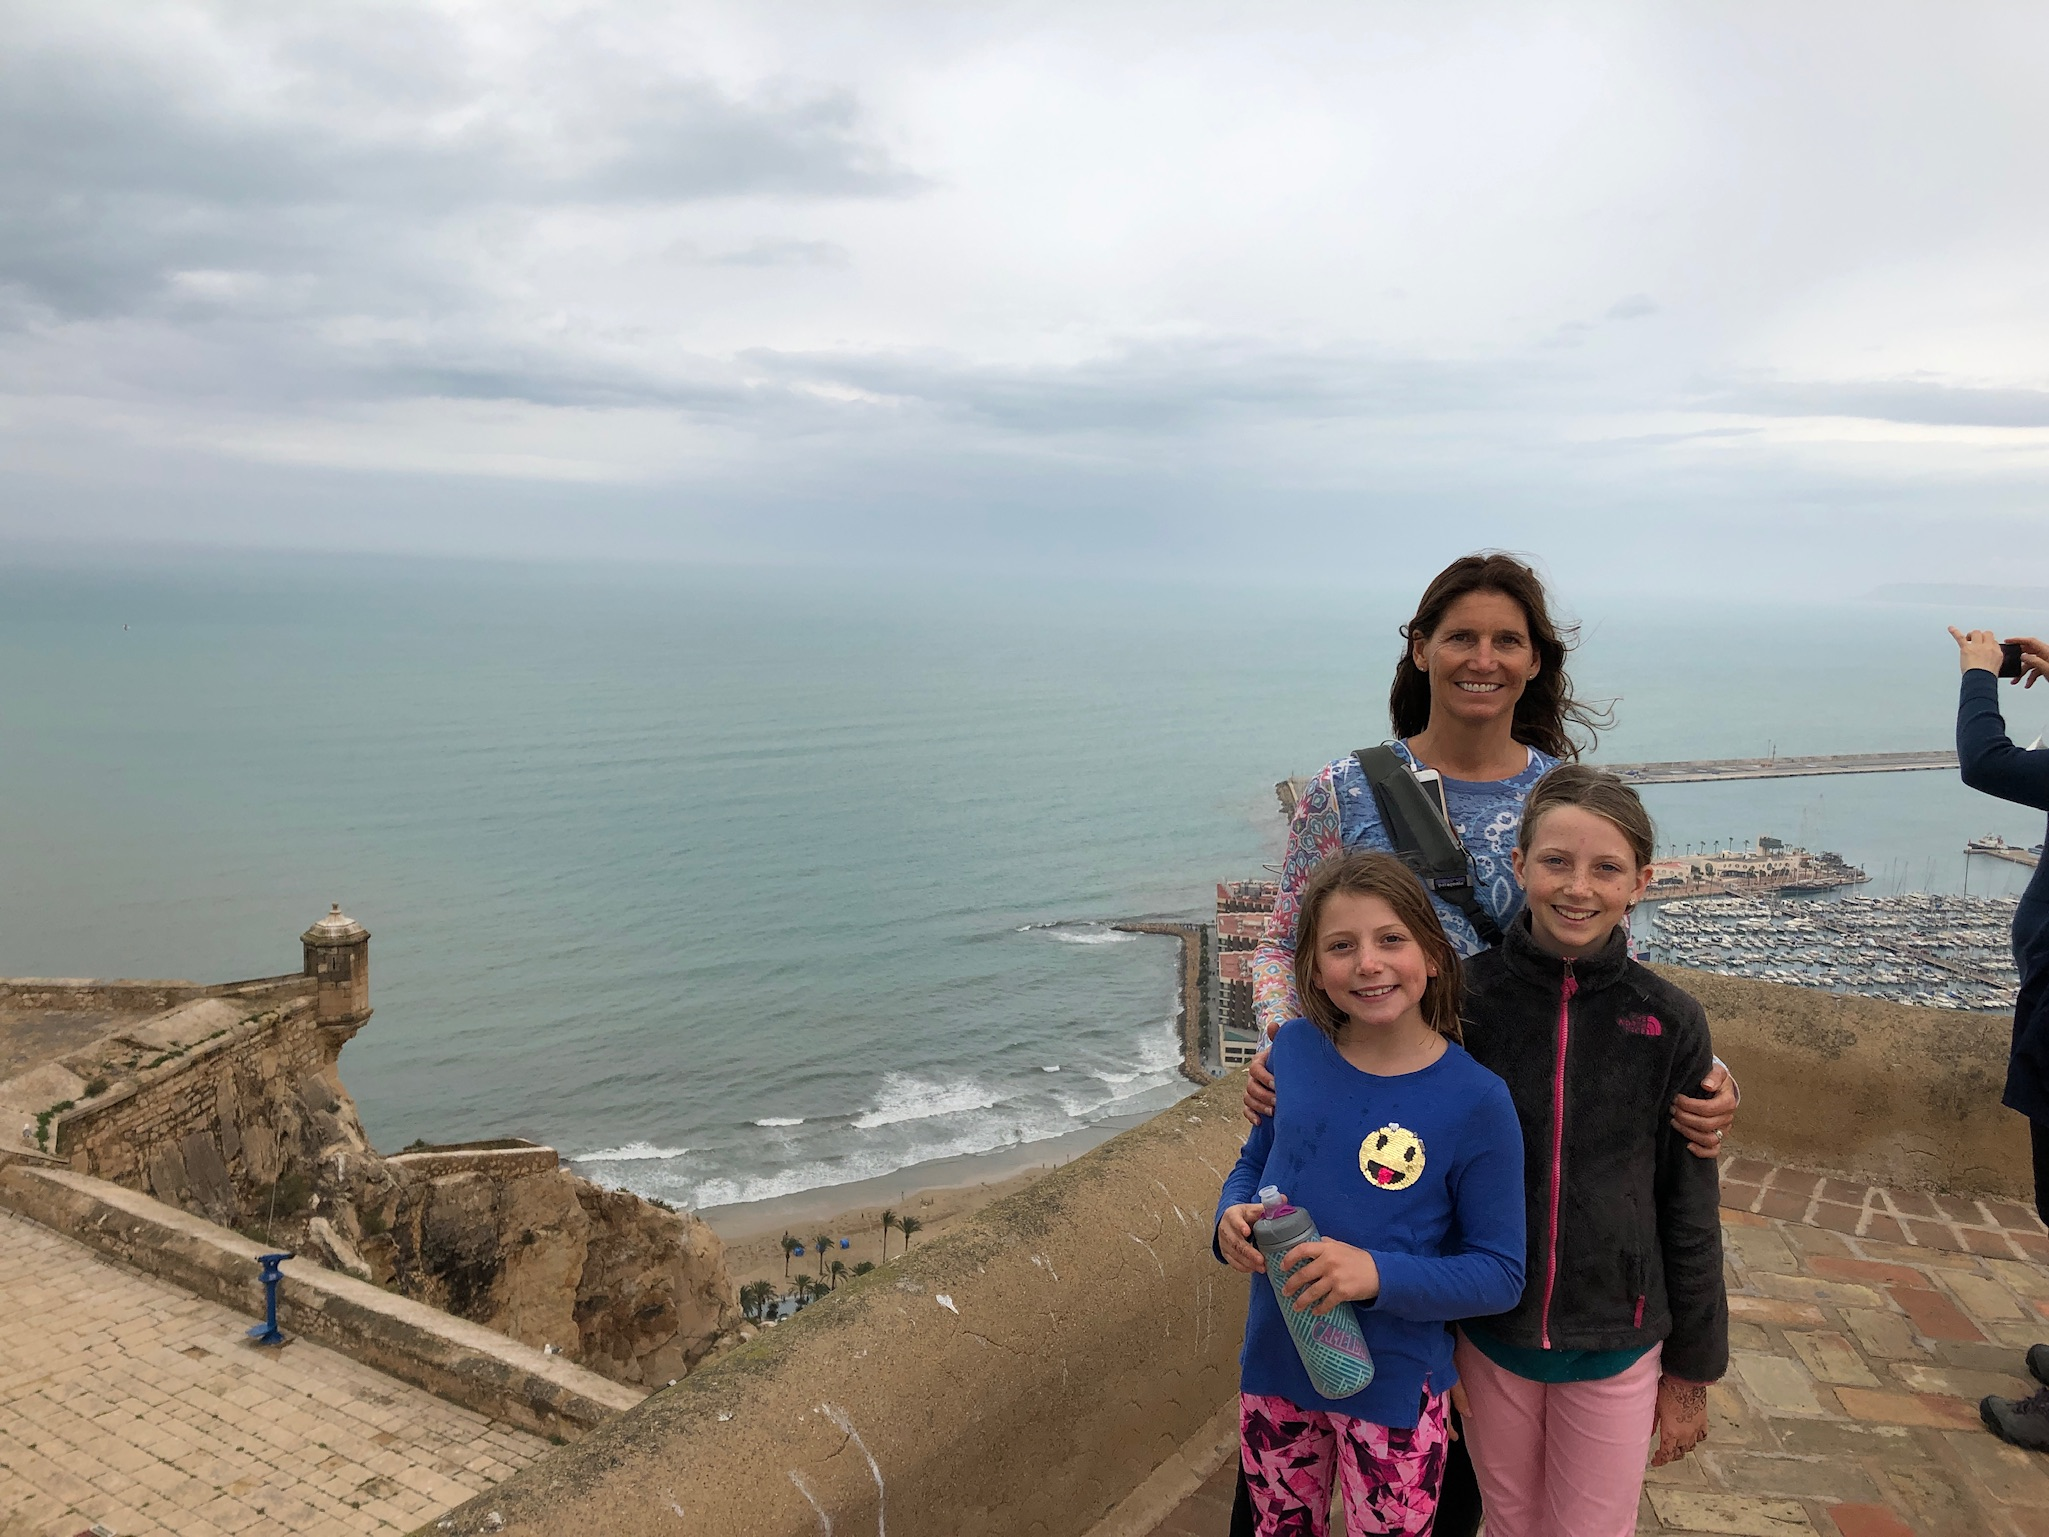 Our last day in Alicante at the castle.